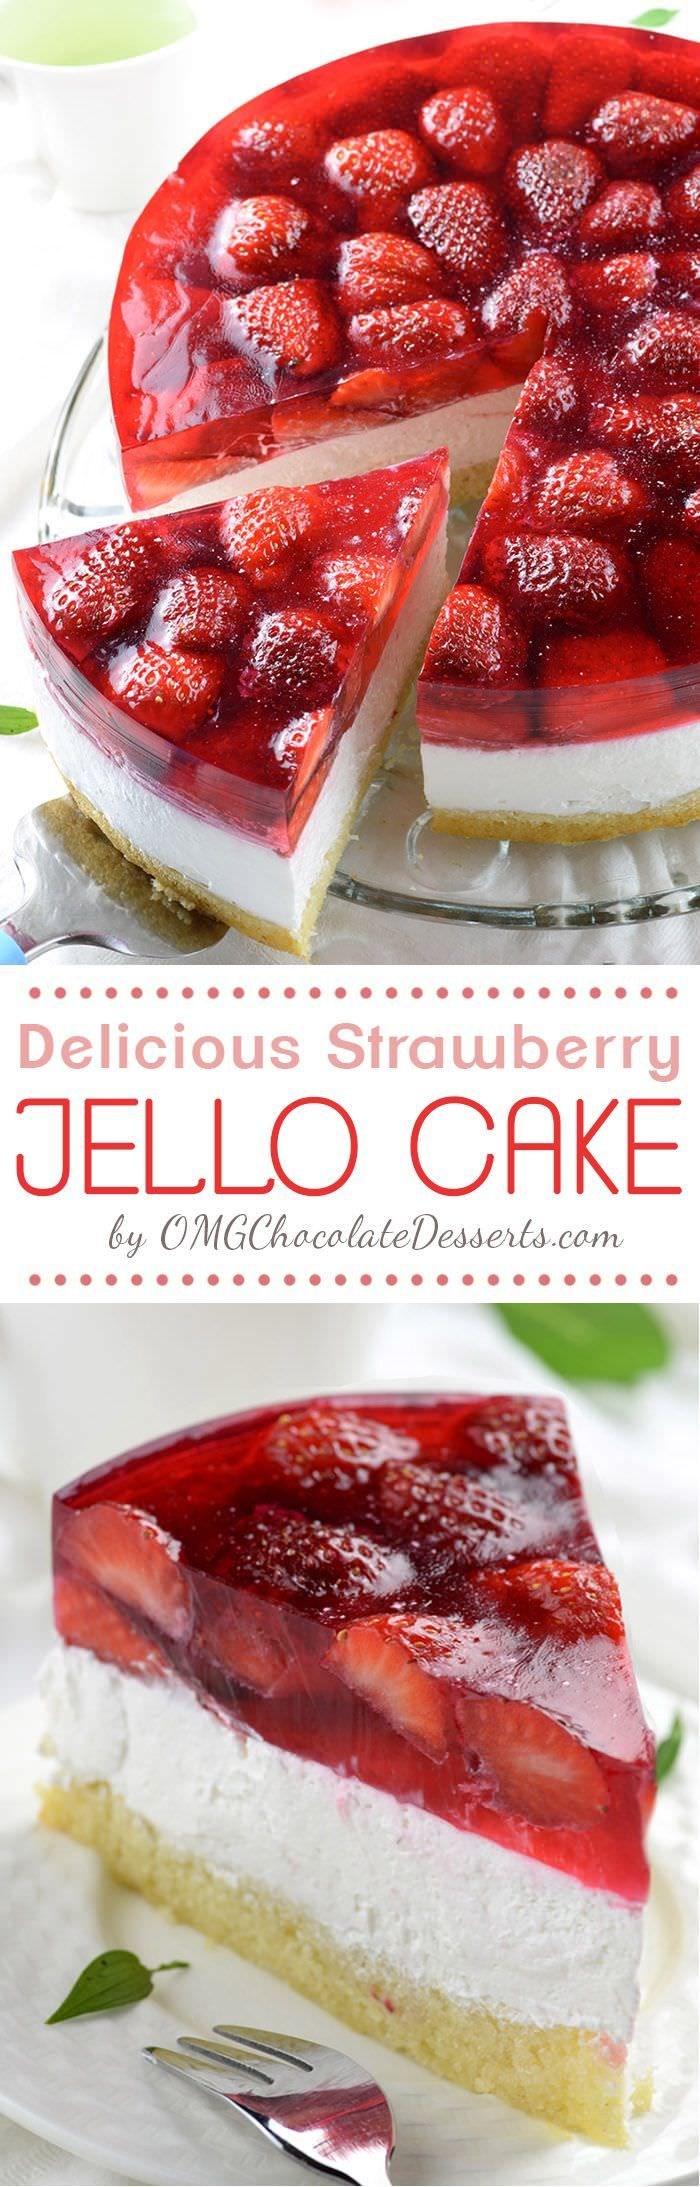 Amazing Strawberry Jello Cake